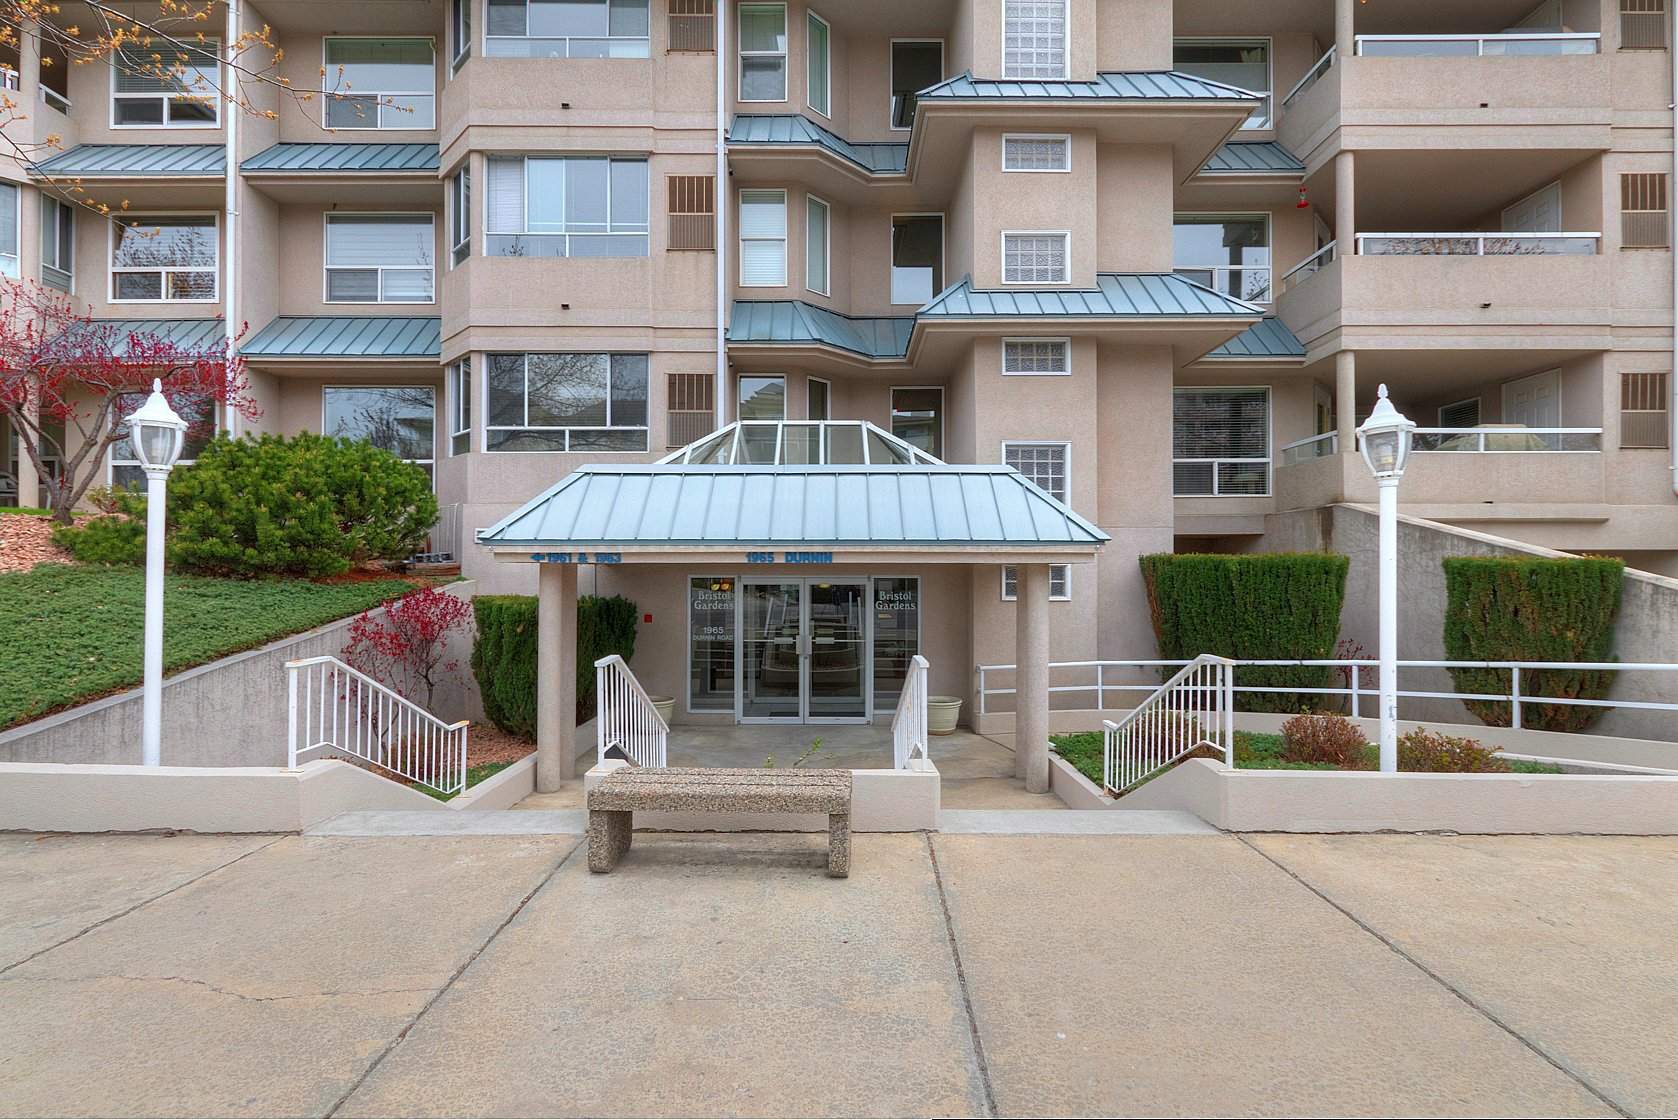 Main Photo: 107 1965 Durnin Road in Kelowna: Springfield/Spall Multi-family for sale (Central Okanagan)  : MLS®# 10148720